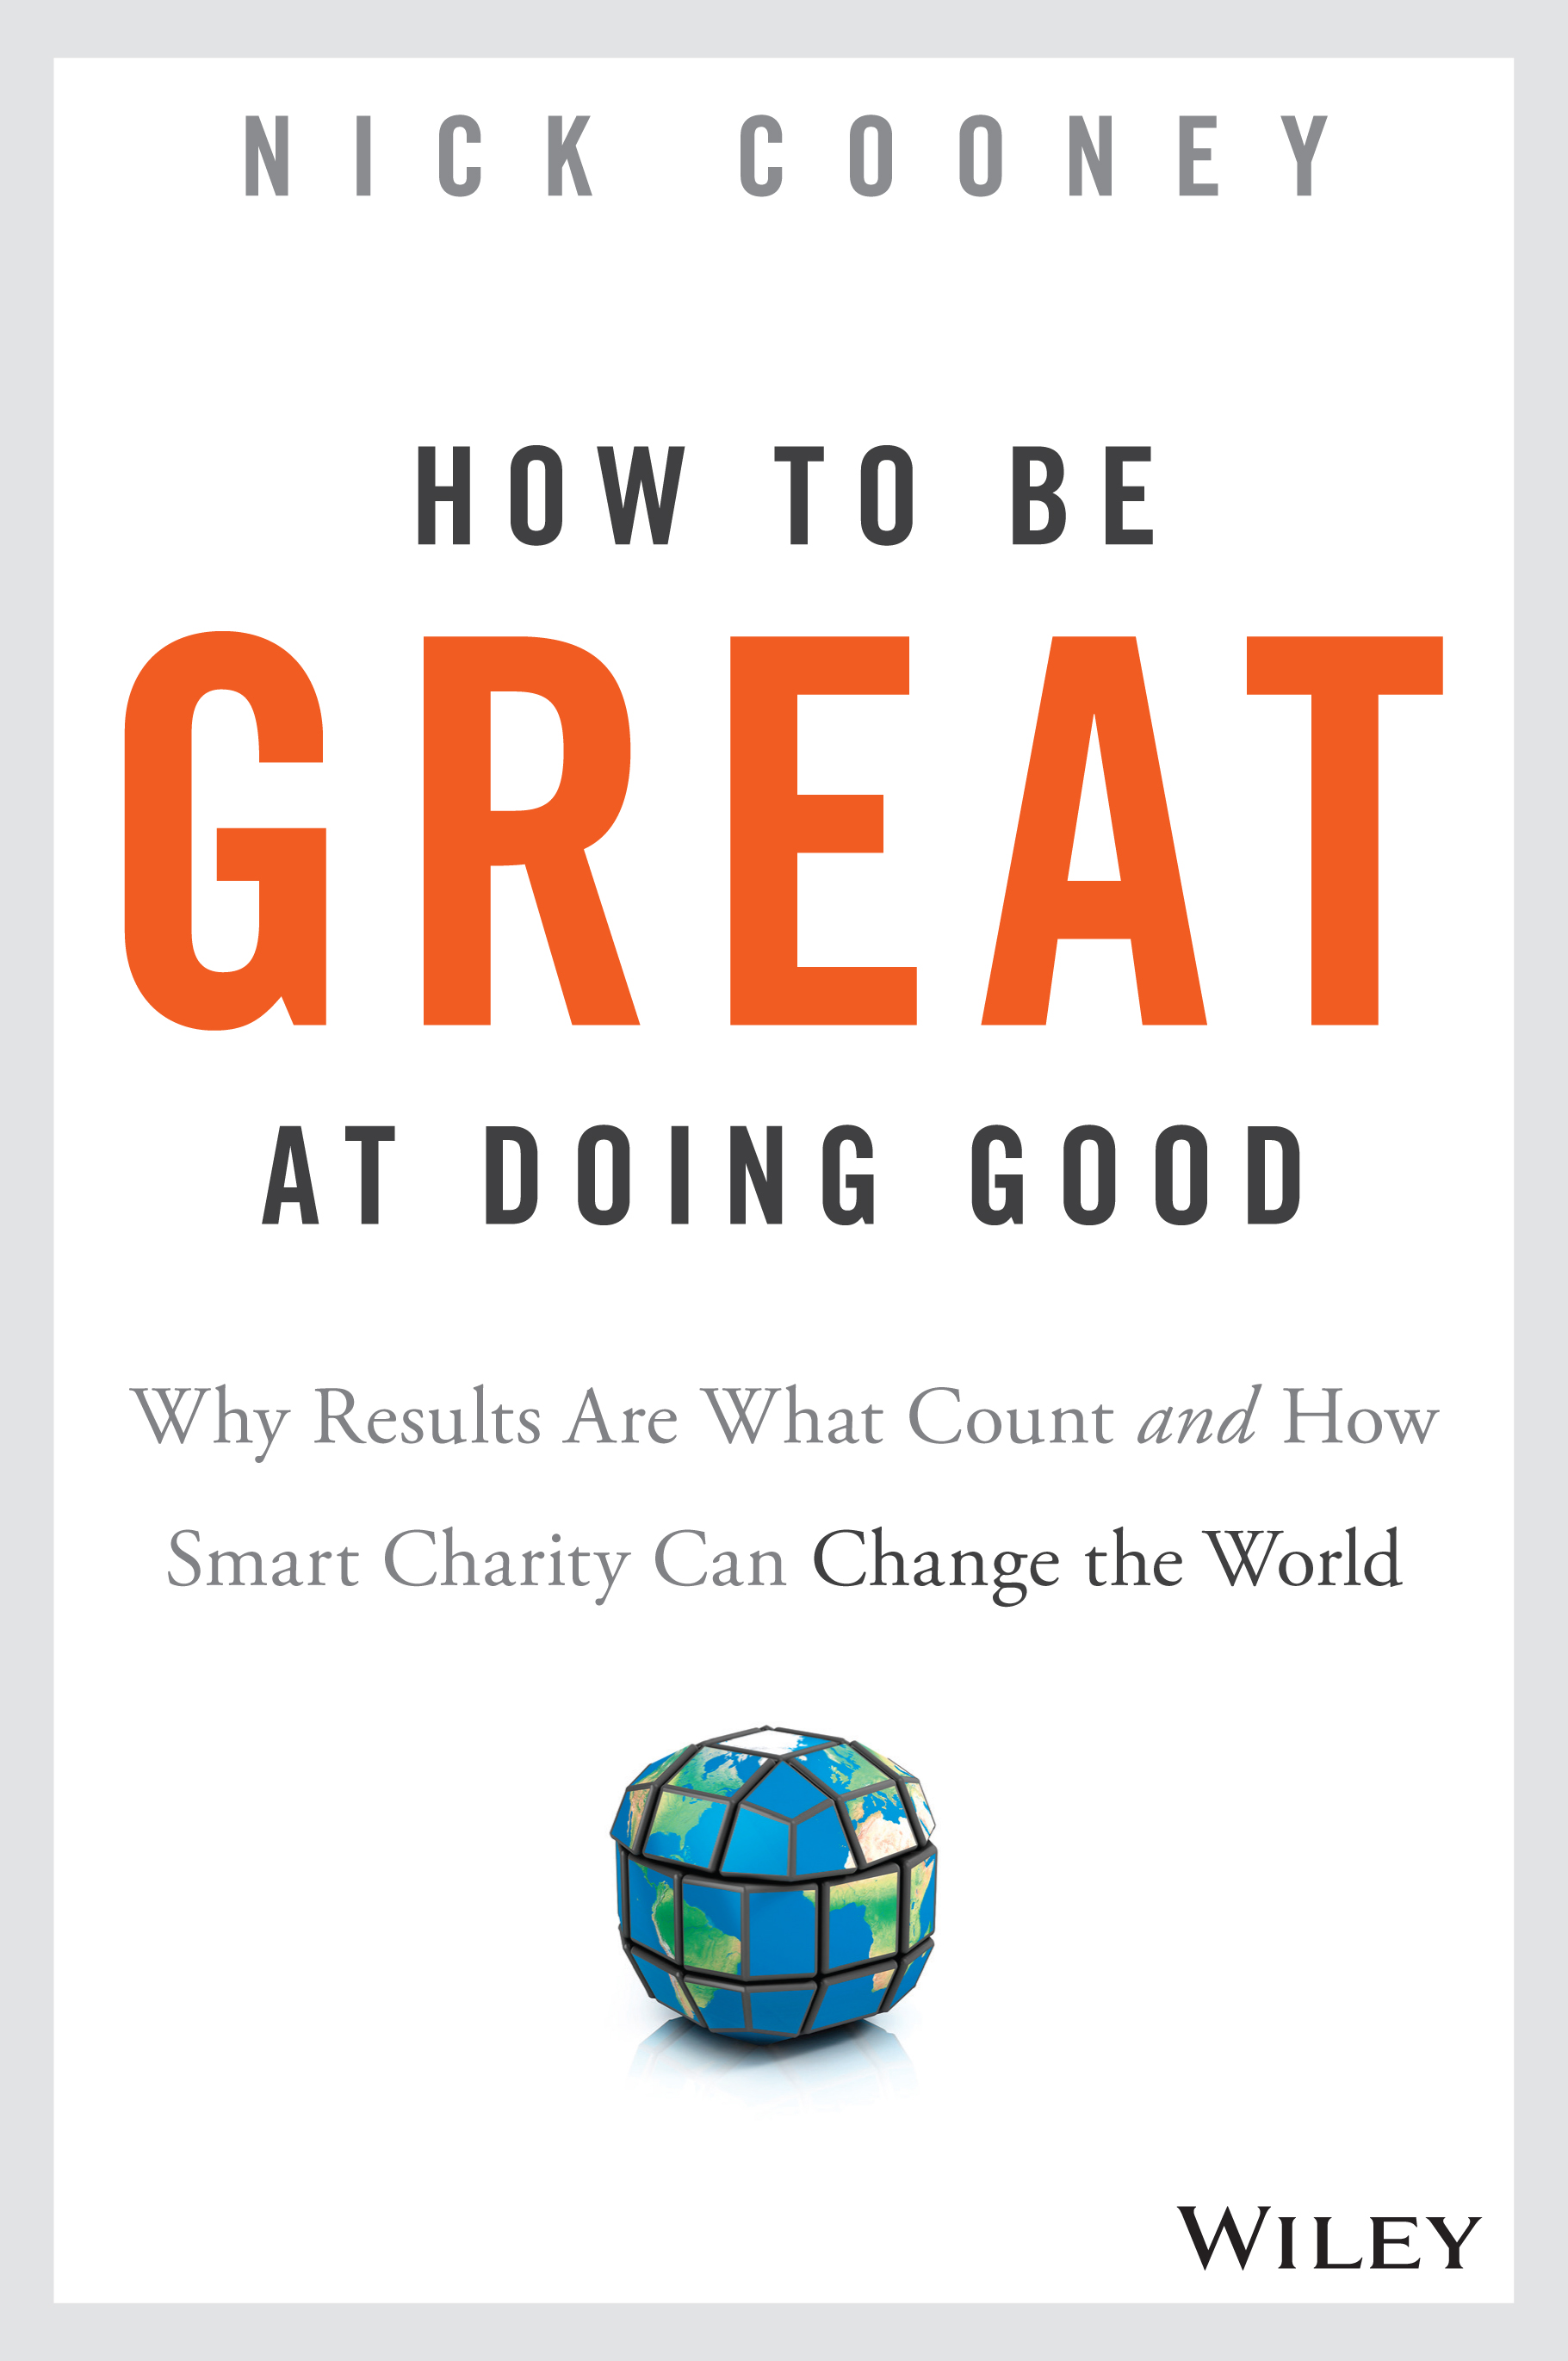 interview nick cooney how to be great at doing good charitable donations have been increasing in recent years and accounted for approximately 358 billion in 2014 or 2 percent of gdp